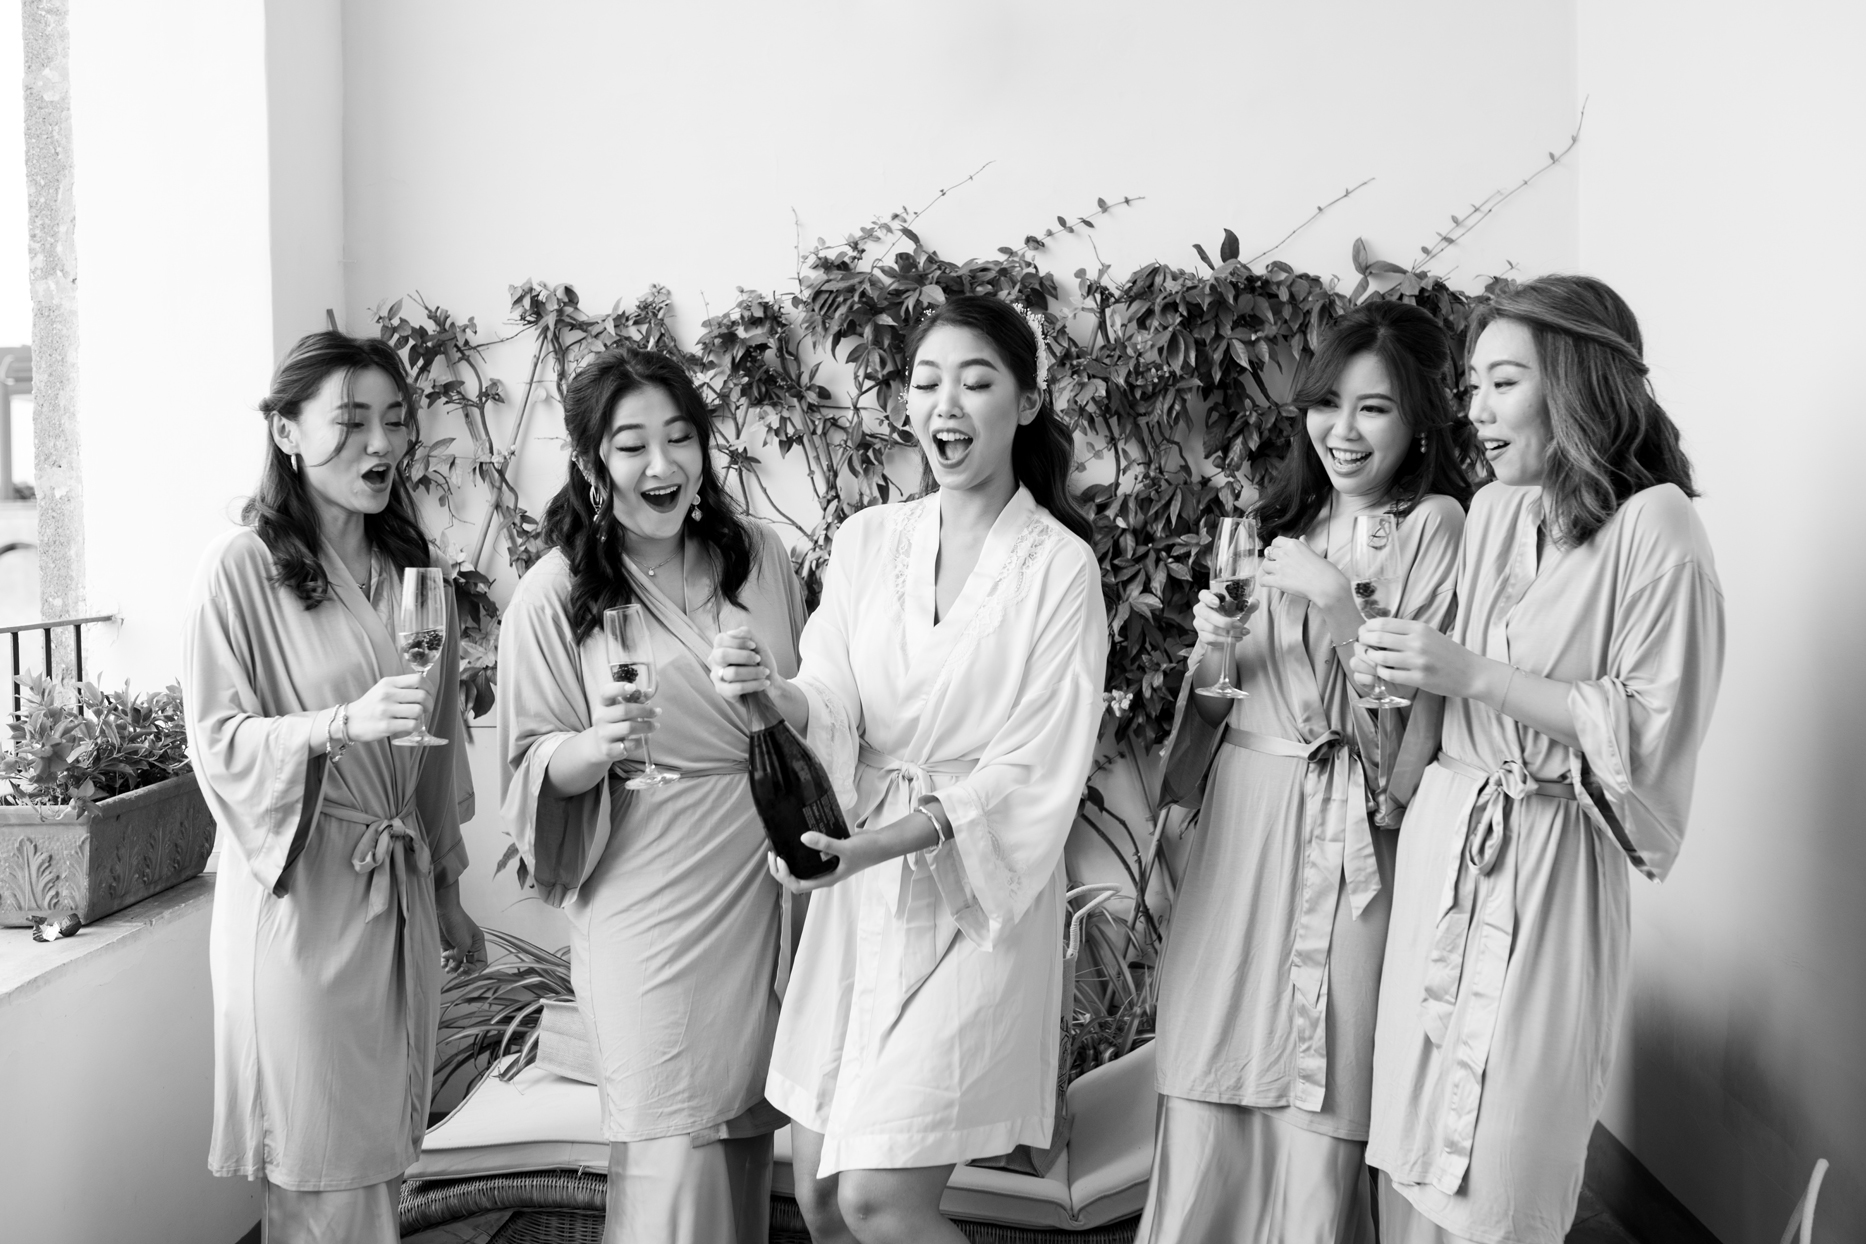 bride popping champagne bottle with bridesmaids wearing robes